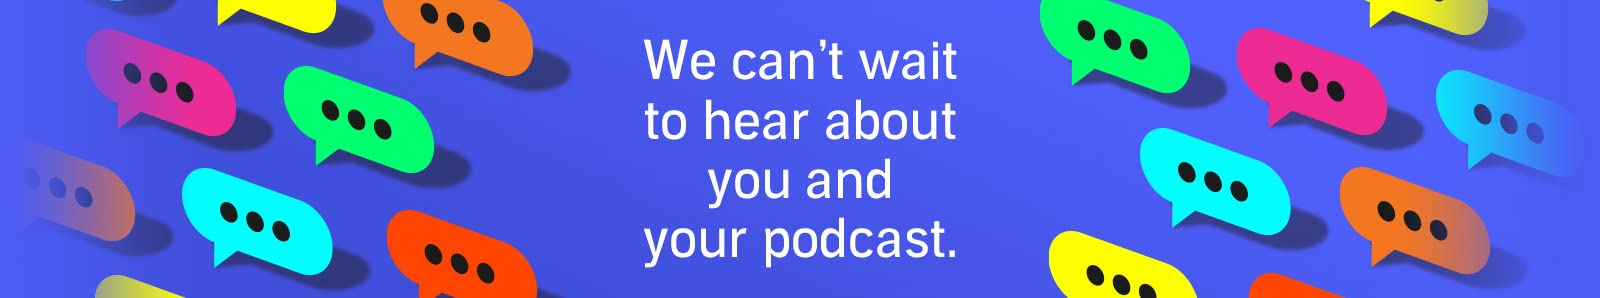 All set? We can't wait to hear about you and your podcast. Click here to apply now.